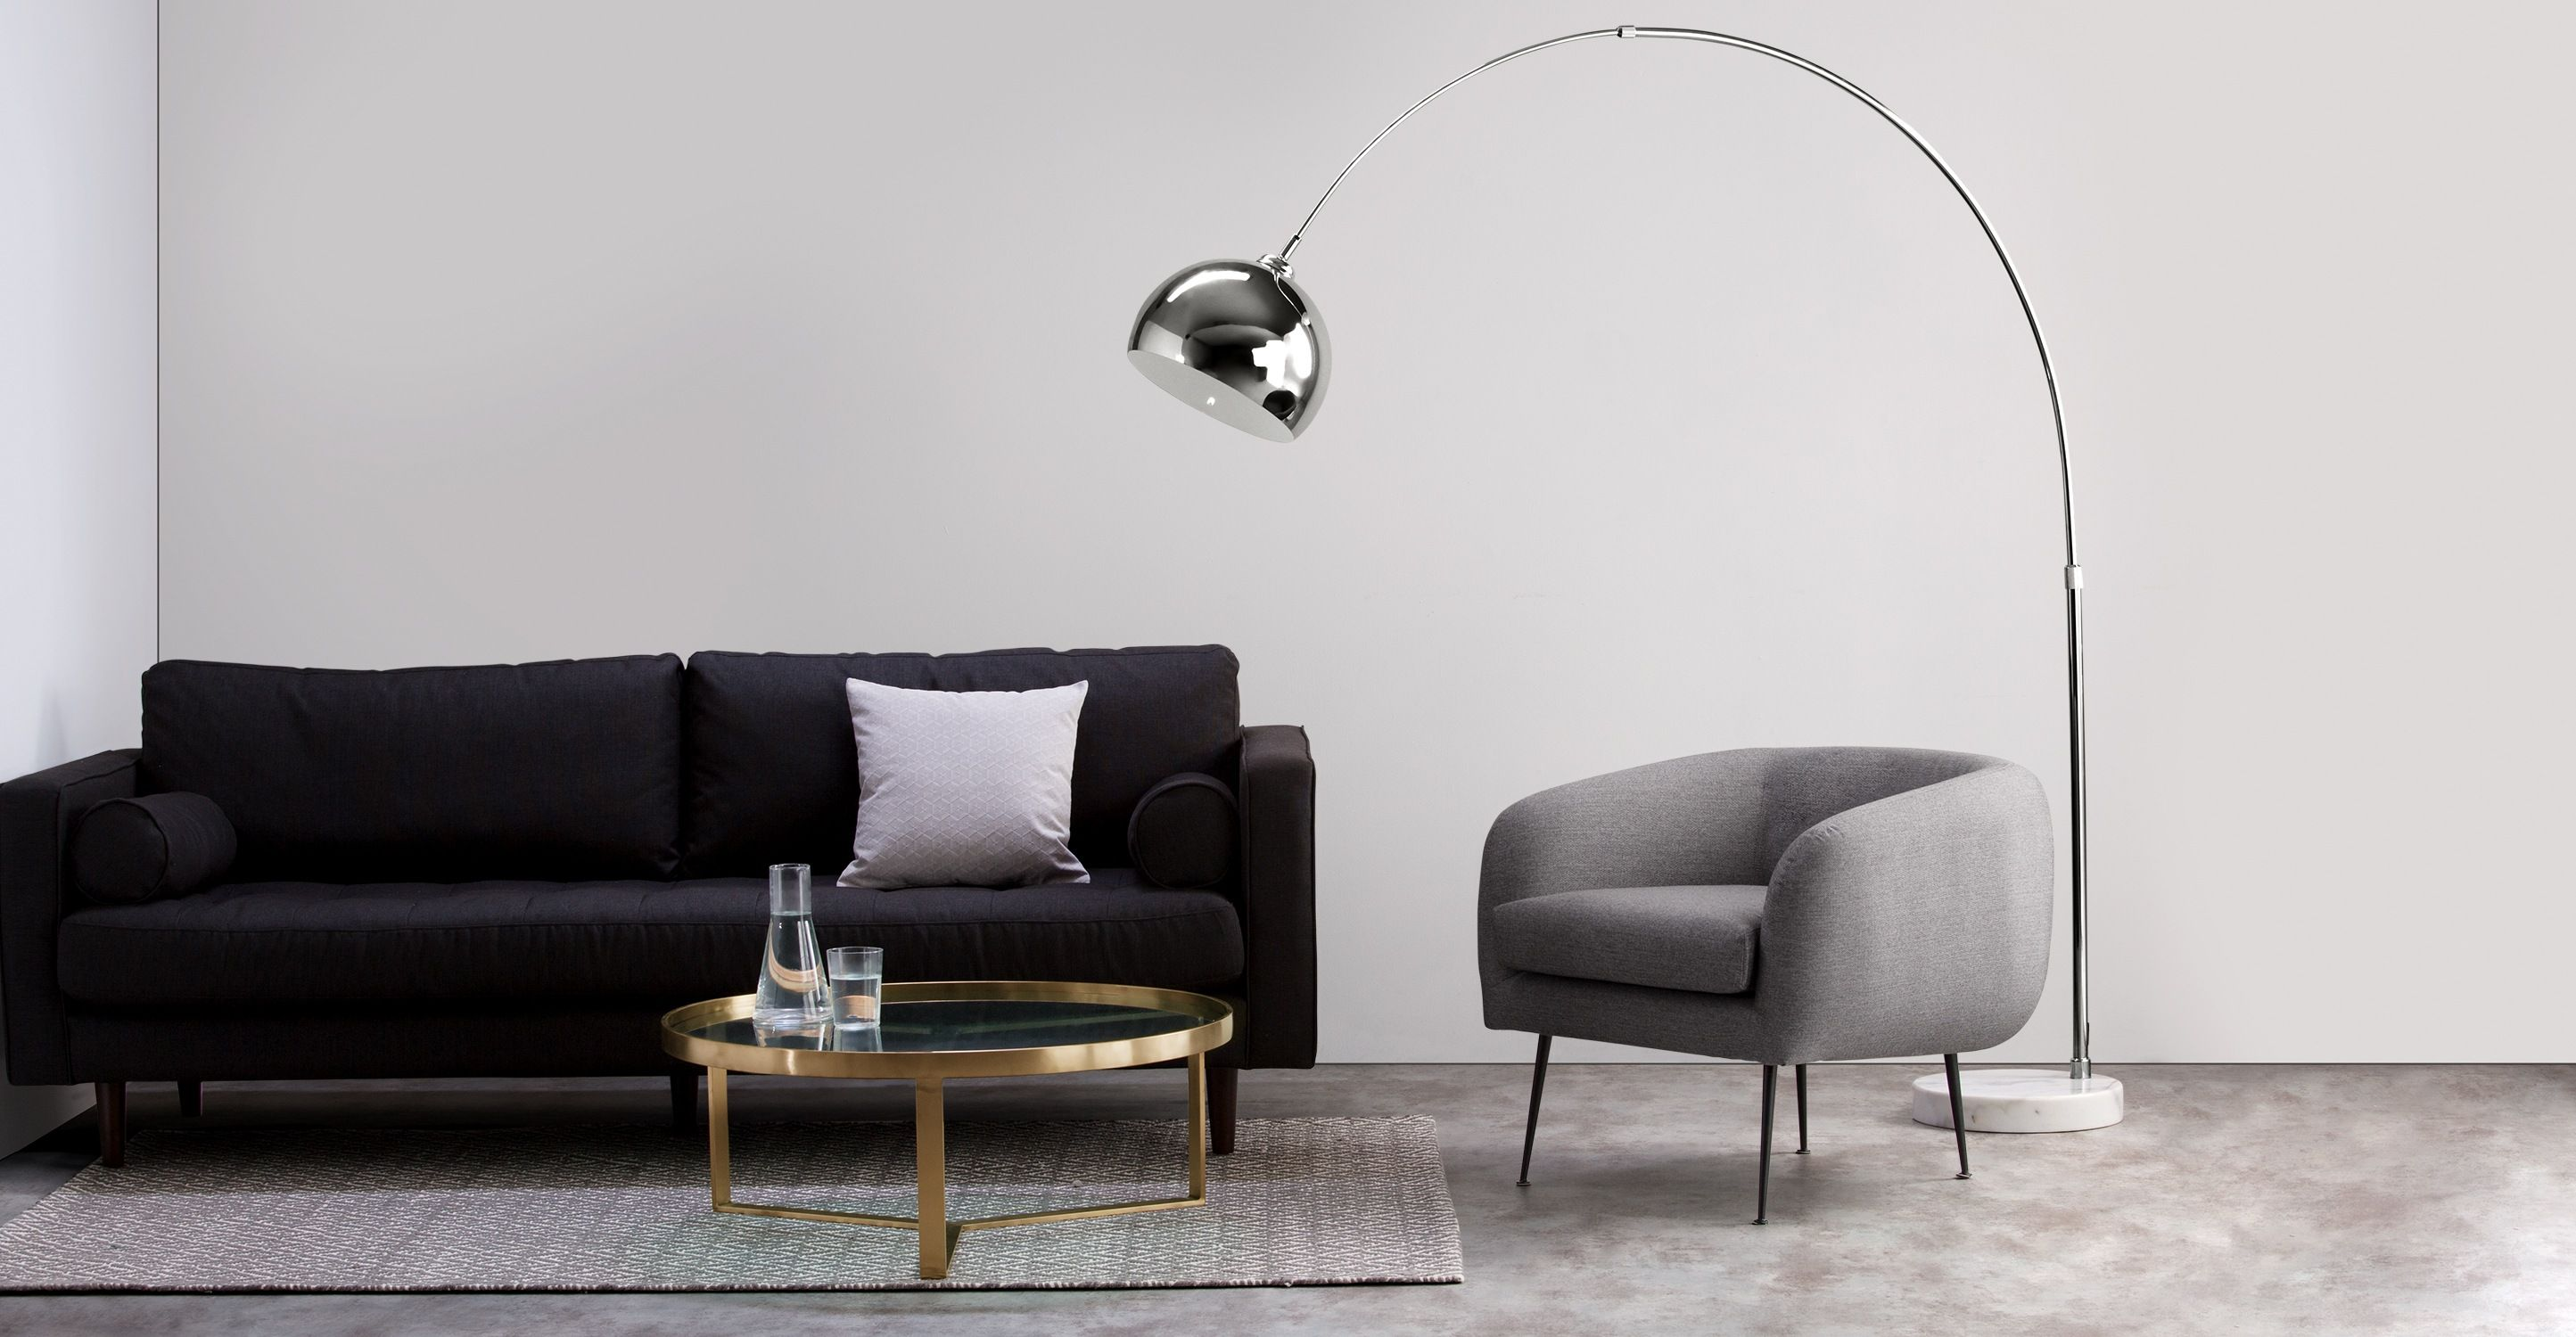 Terrific Bow Large Floor Lamp Chrome And White Marble Mid Century Download Free Architecture Designs Grimeyleaguecom